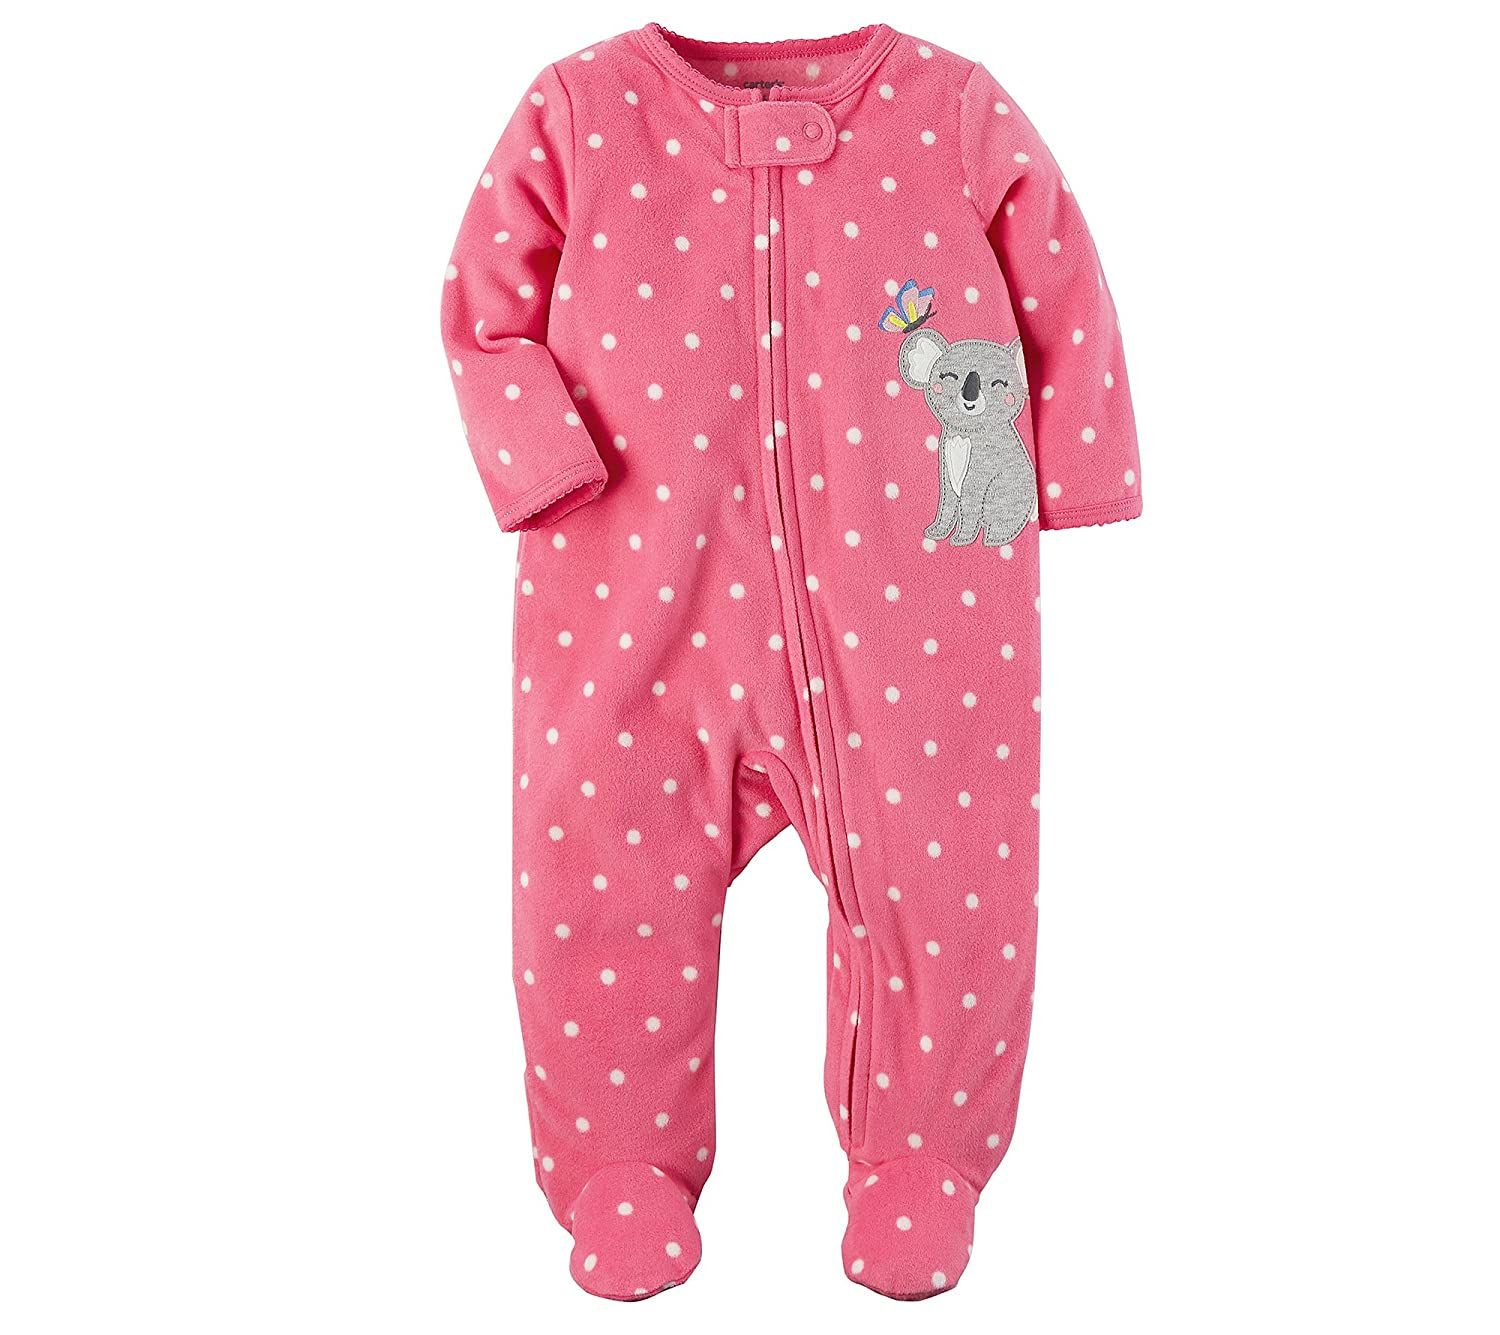 Carter's Baby Girls' Fleece Zip up Koala Sleep & Play Carters 115G338